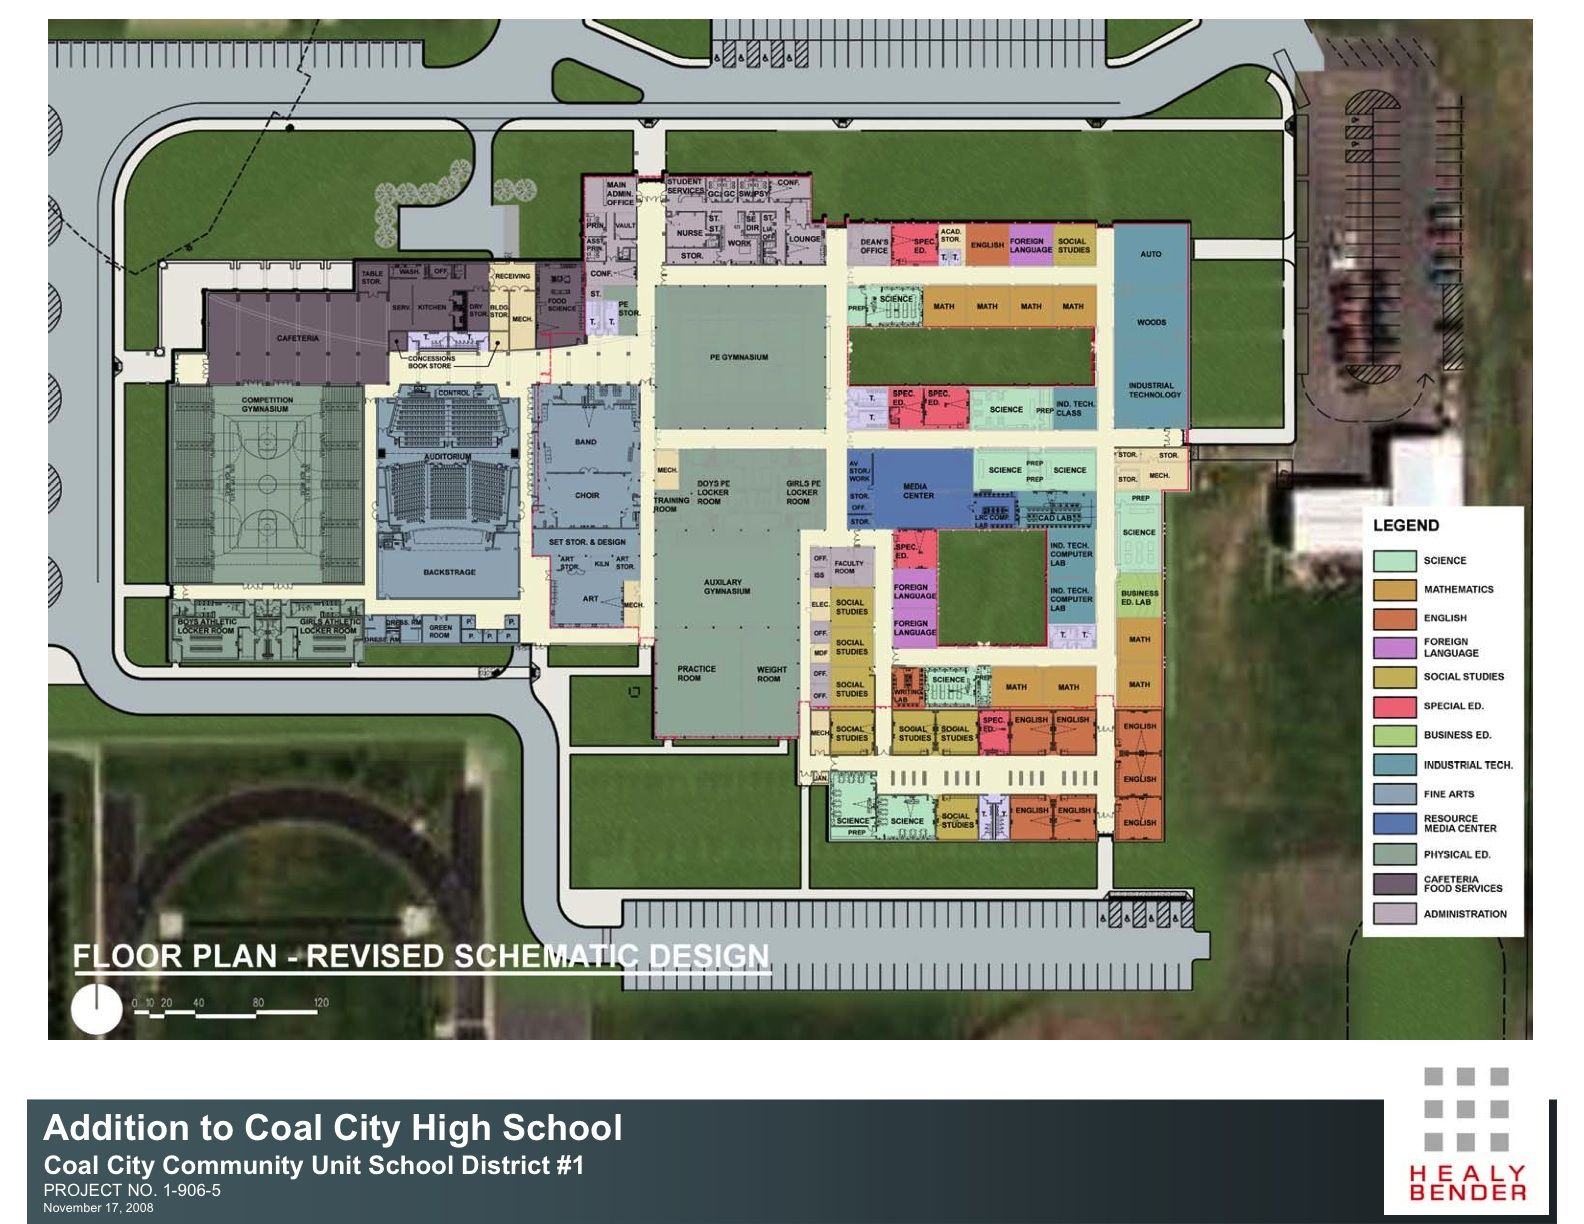 Jabis computer site and floor plans for schools